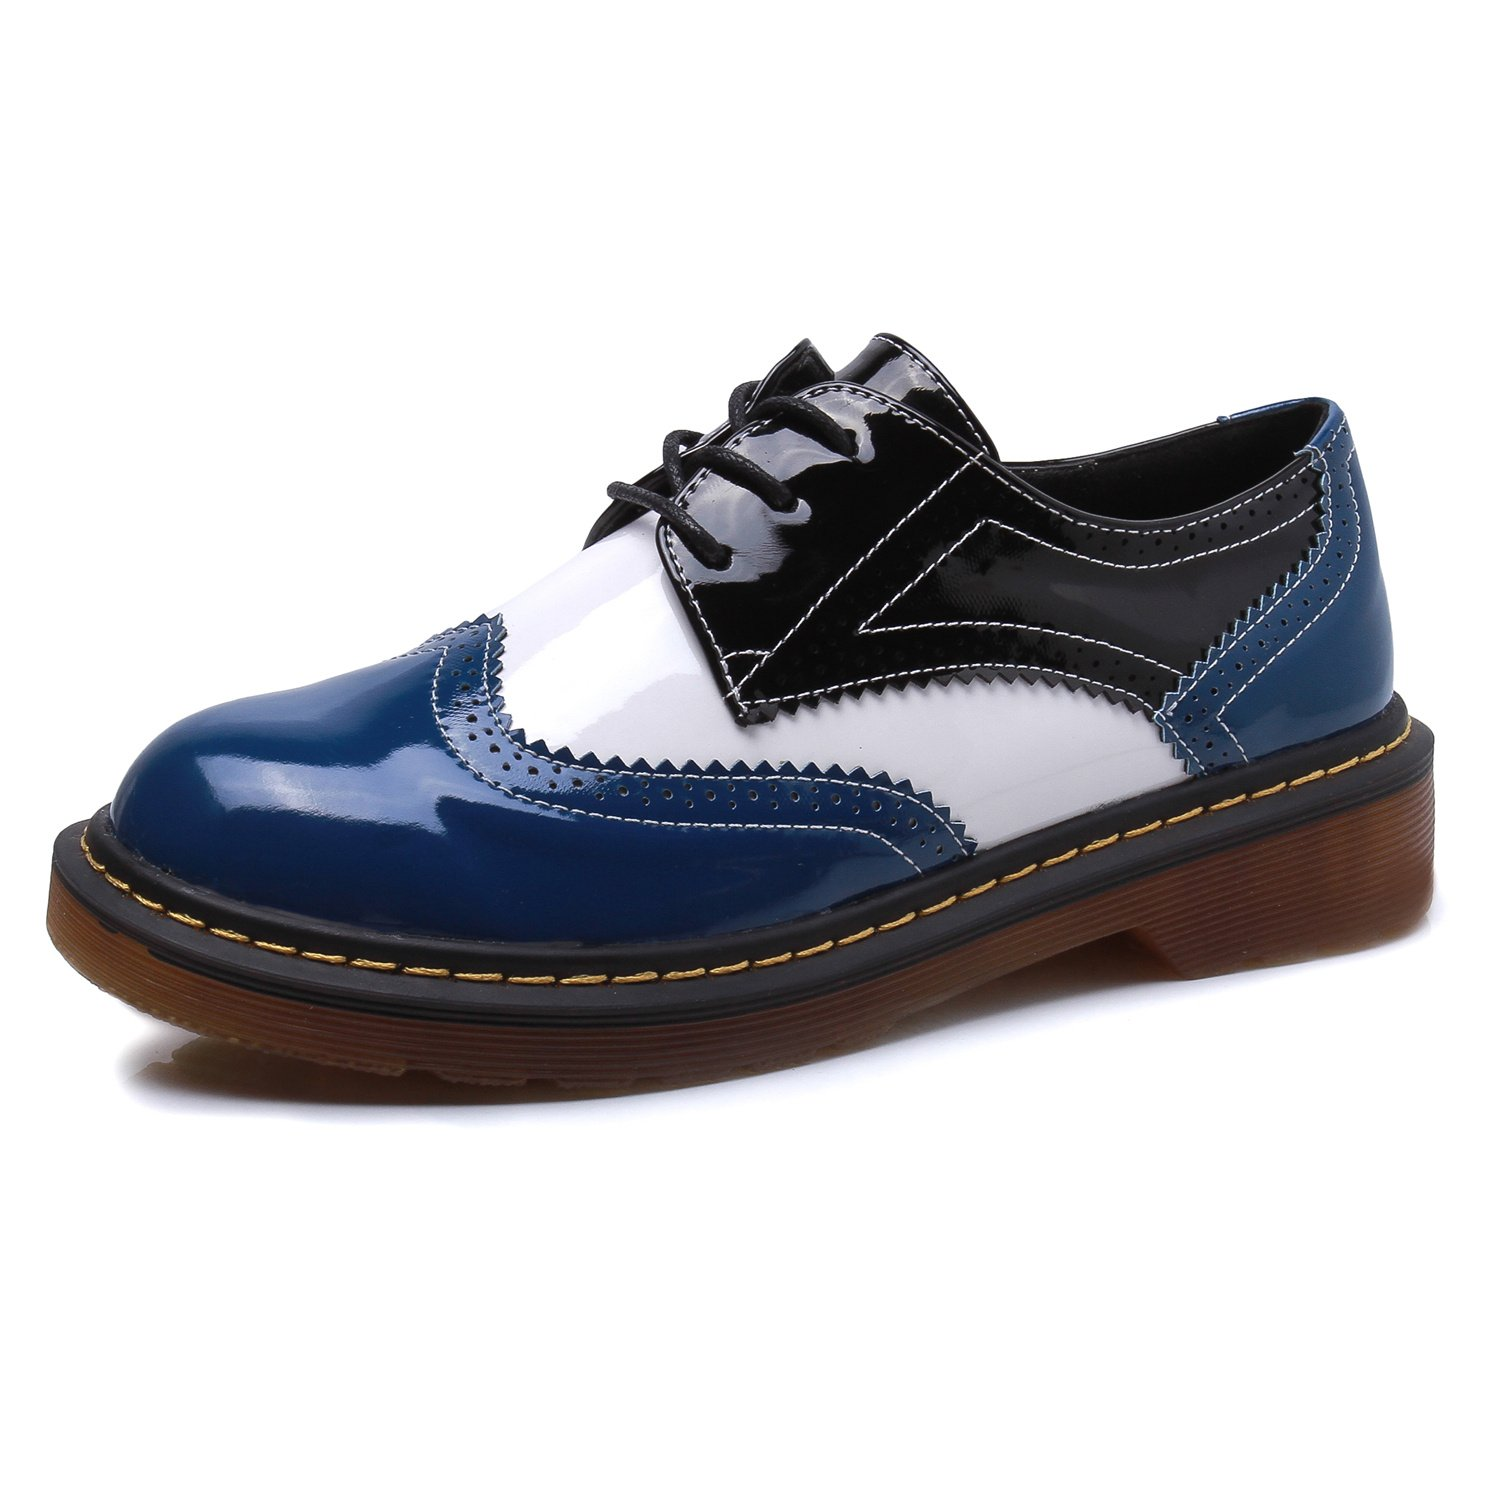 Smilun Lady¡¯s Full Brogue Derby Shoes Assorted Colours Classic Flats Shoes B01M0O6T4S 6 B(M) US|Blue